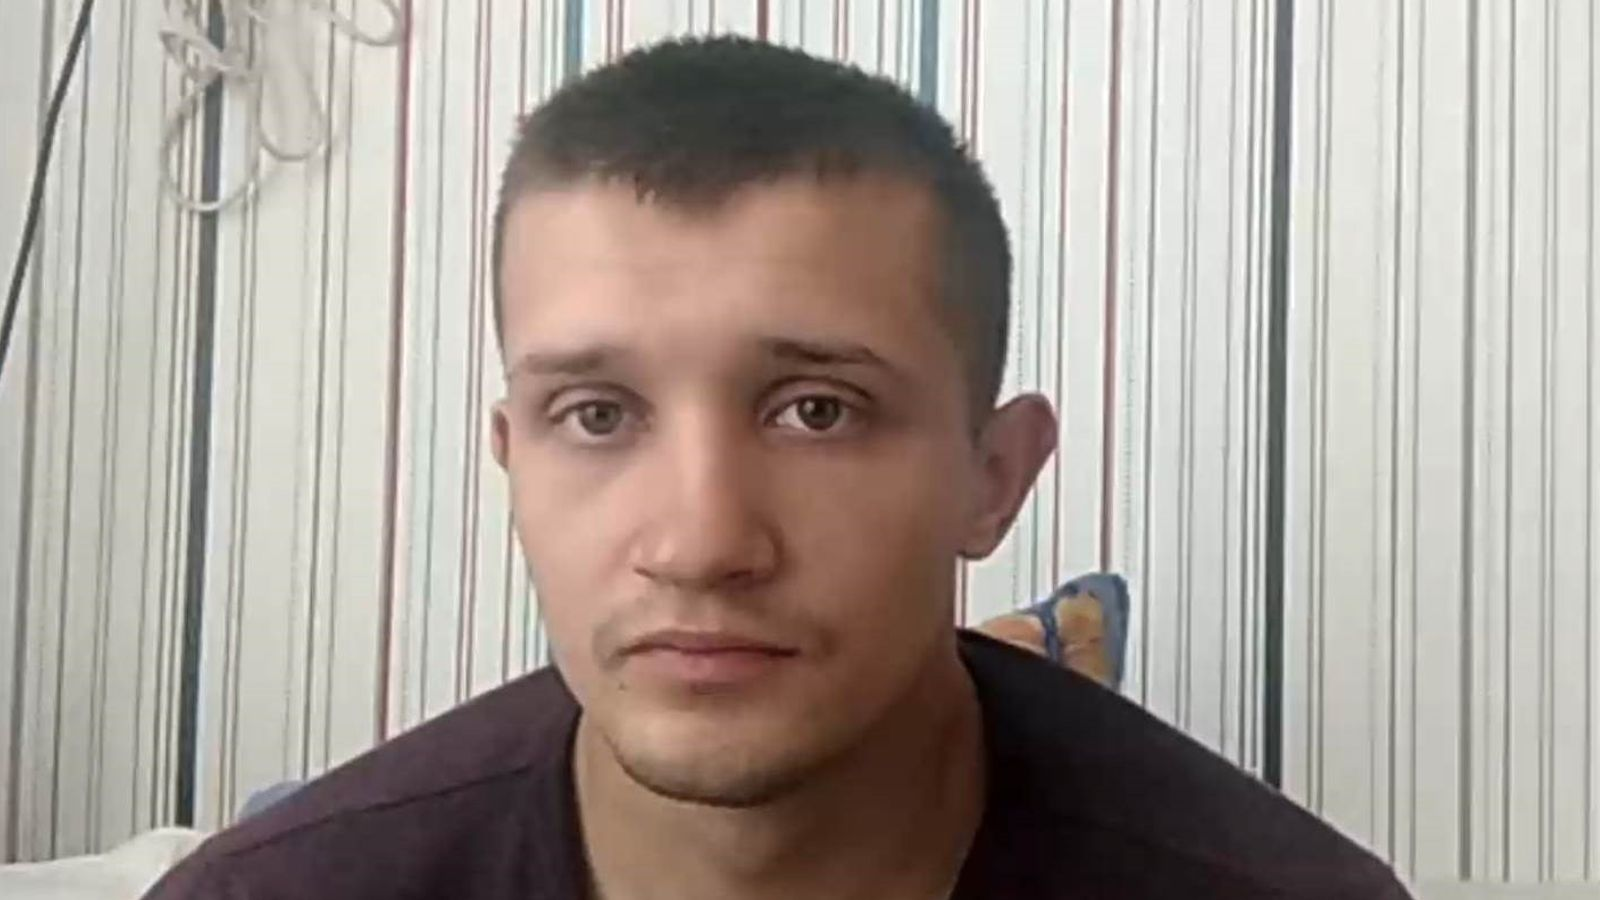 Belarus protests: I was locked up and beaten after police hauled me out of taxi during demonstrations